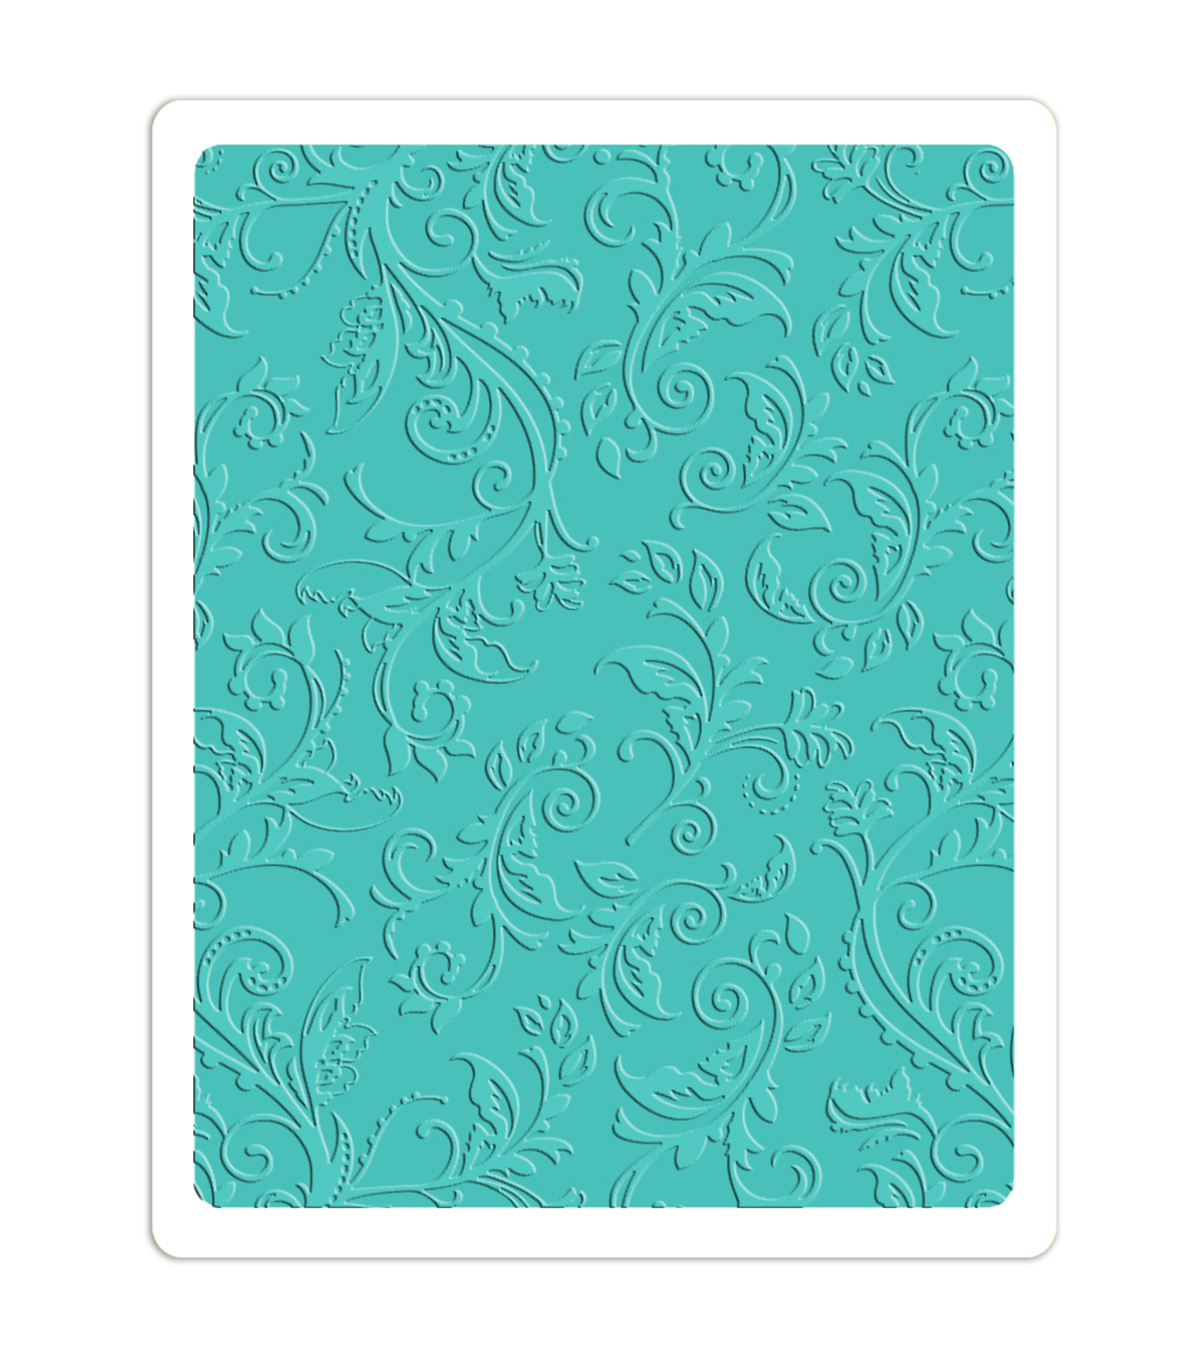 Sizzix Textured Impressions Plus Embossing Folder-Botanical Swirls